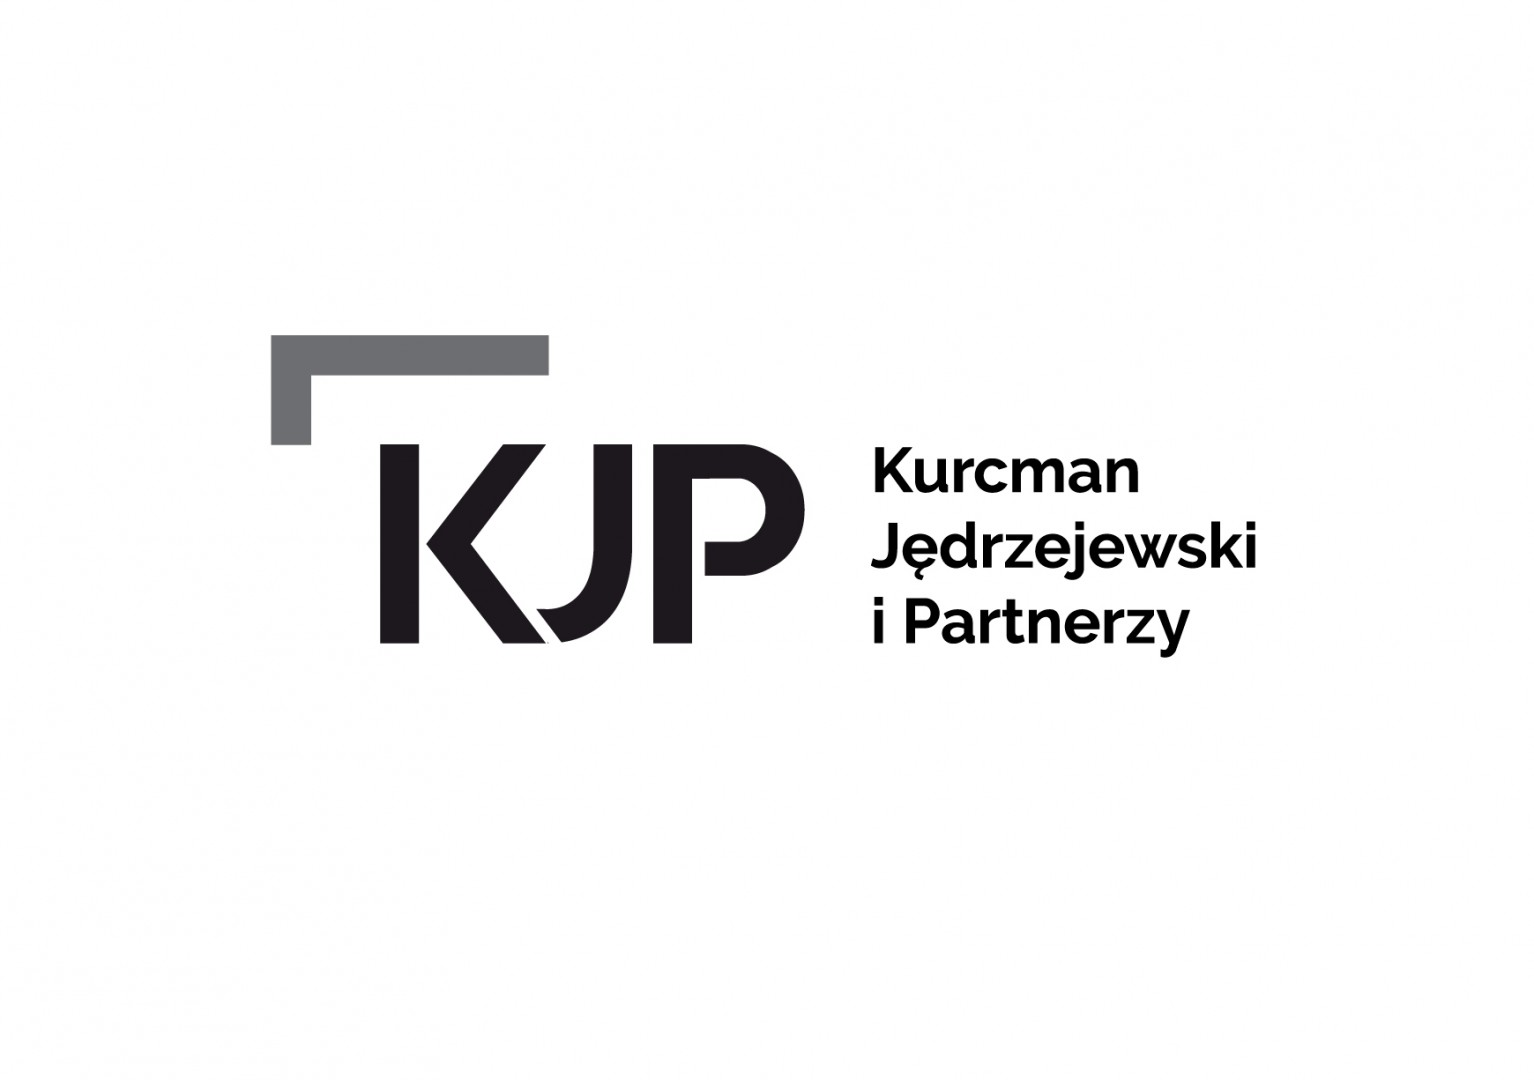 Zapraszamy na konferencję ''Rethinking patent law as an incentive to innovation'' w dniach 8 i 9 października 2018 r. KJP Kurcman Jędrzejewski i Partnerzy została sponsorem konferencji.